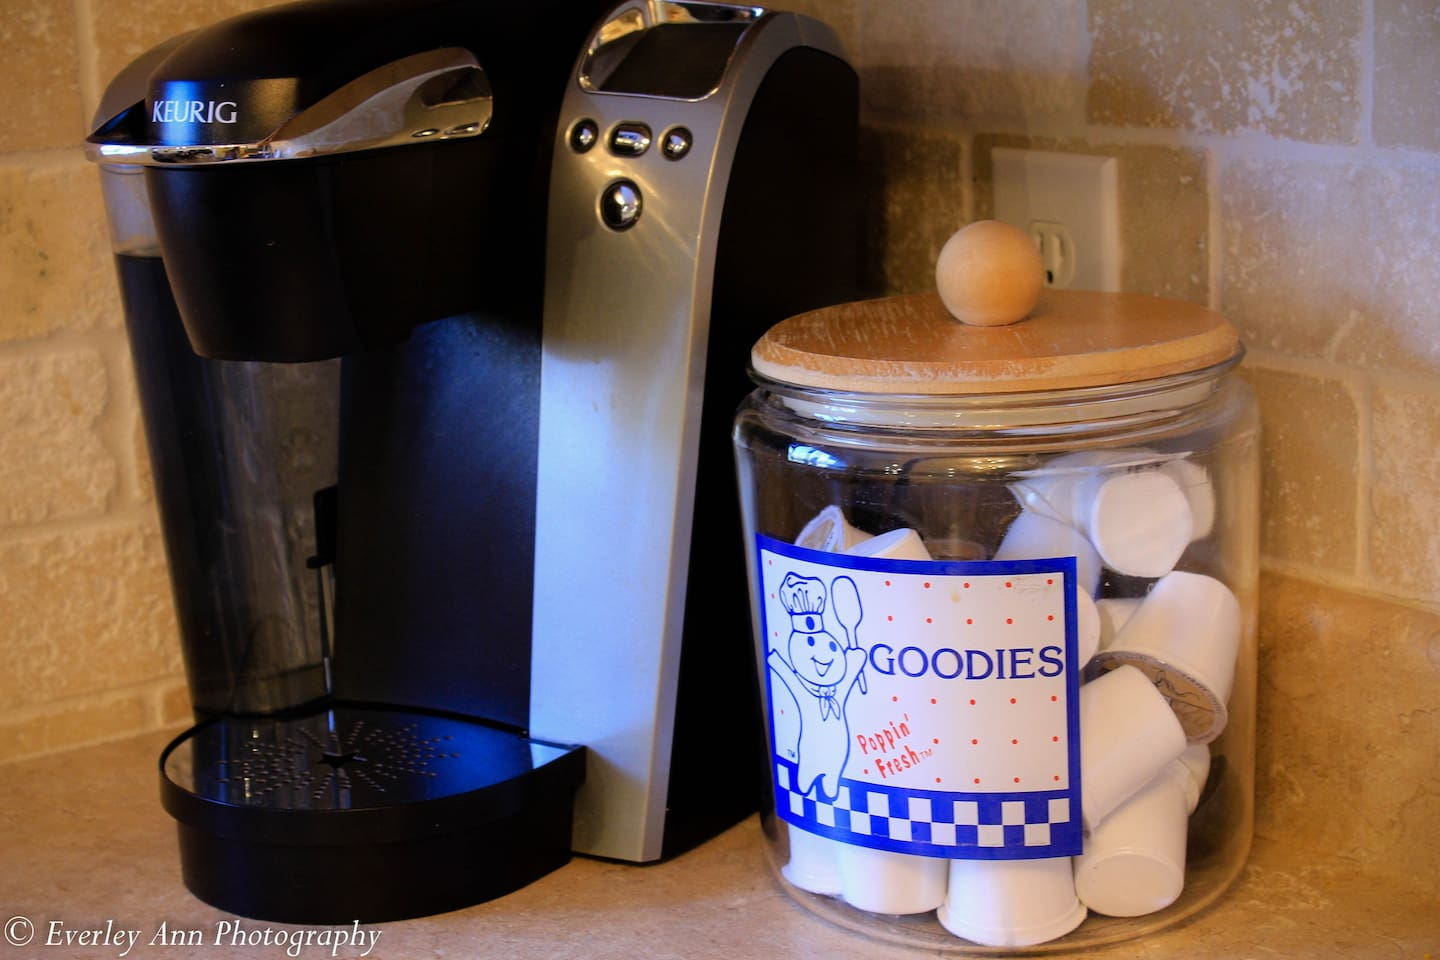 That's right, complimentary Keurig with K-cups and a refillable cup if you like to bring your own.